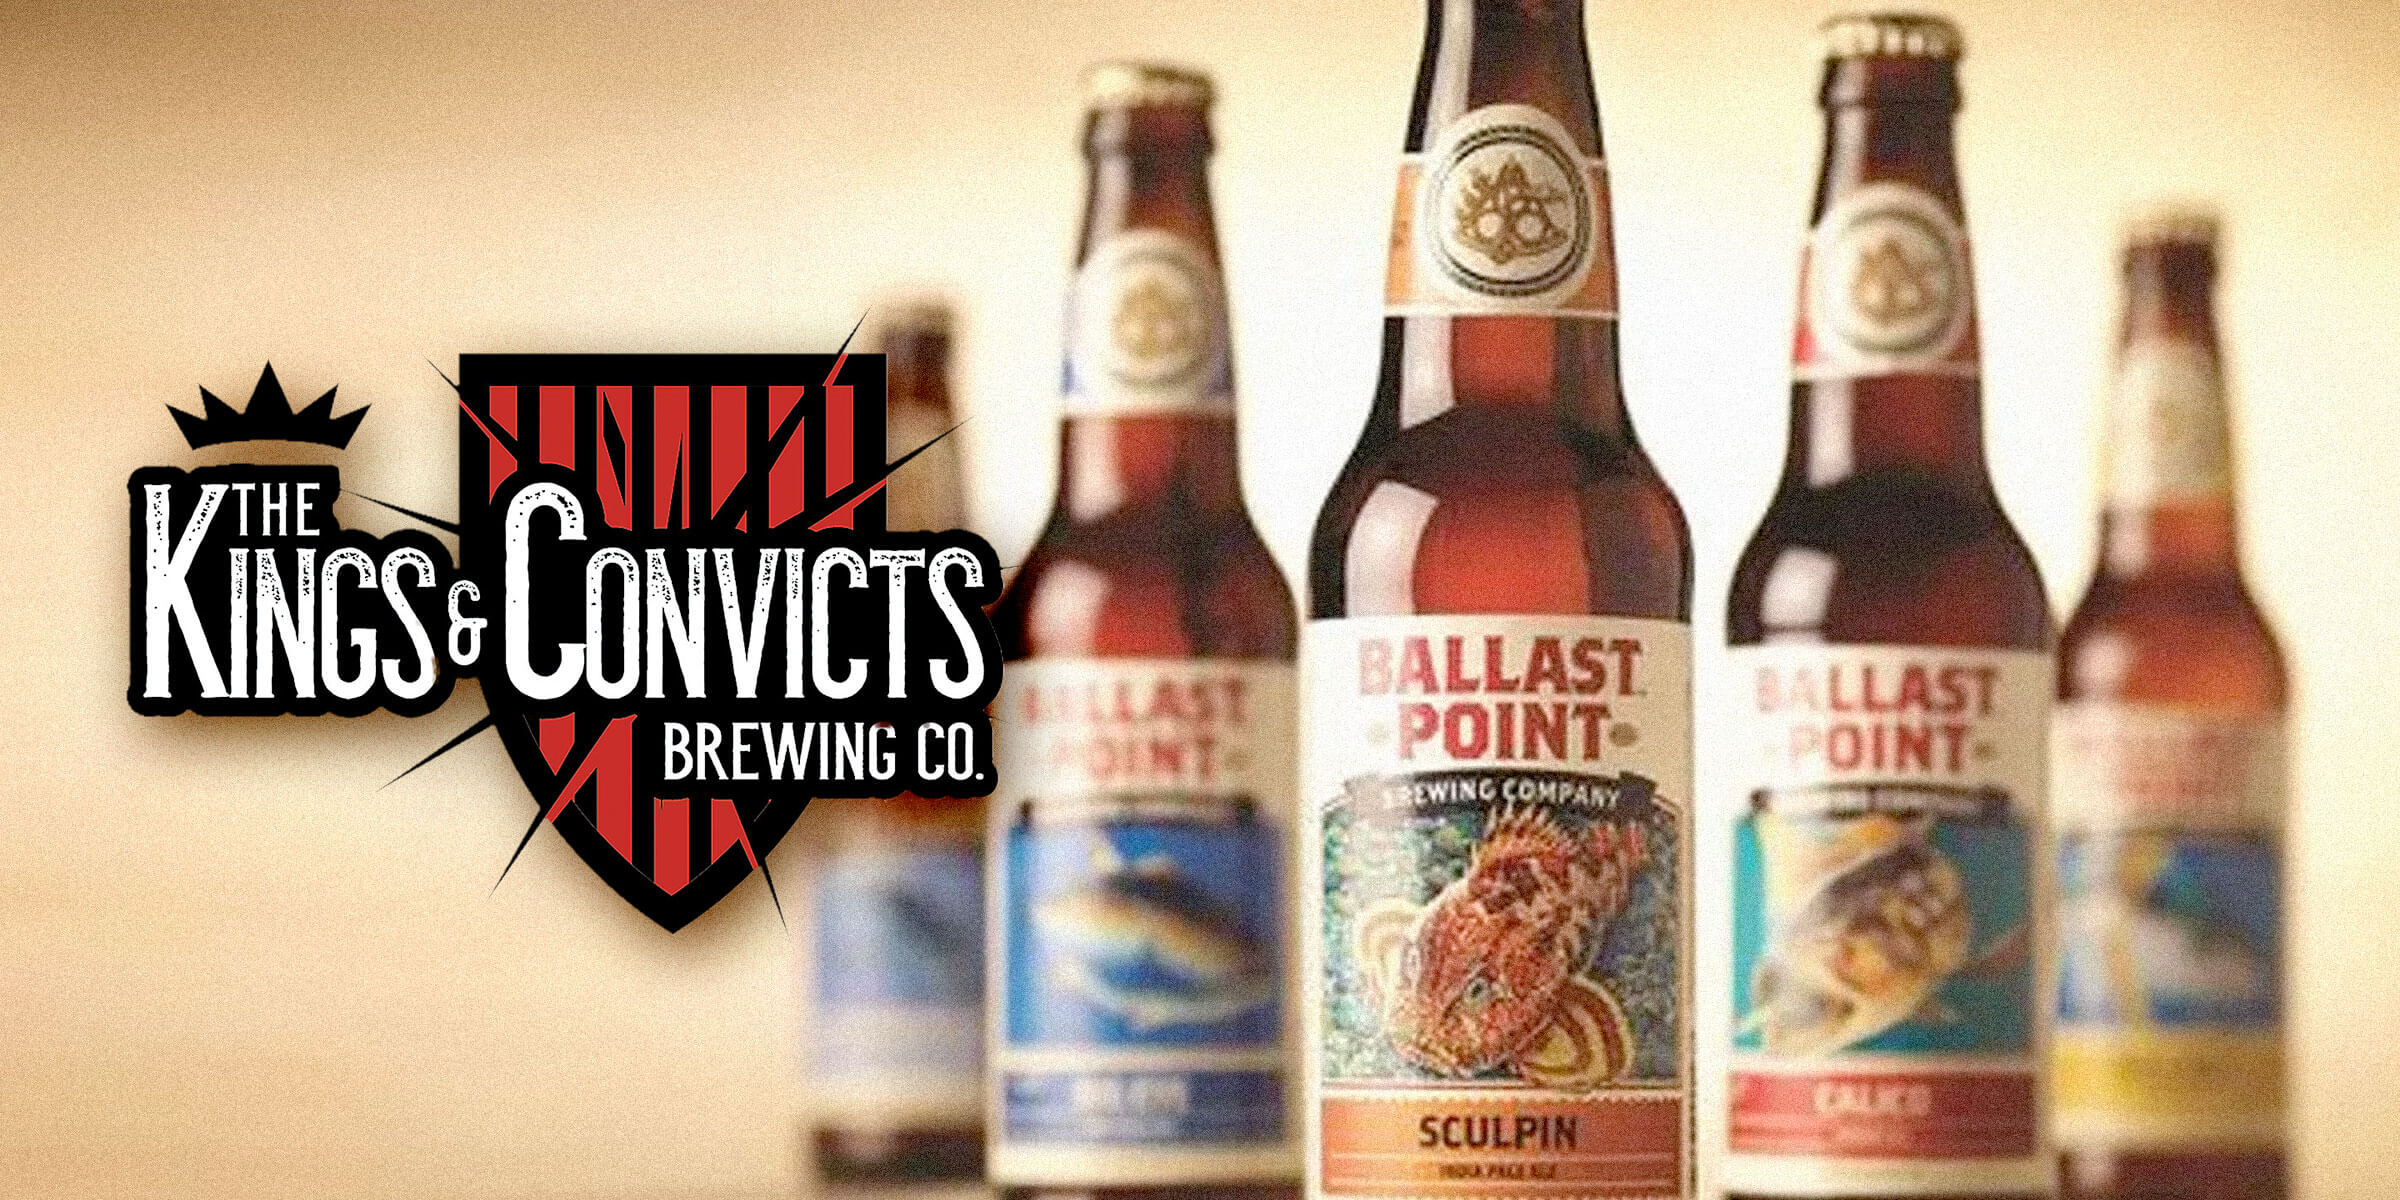 Chicagoland-based Kings & Convicts Brewing Co. acquired U.S. brewing giant Ballast Point Brewing Company from Constellation Brands